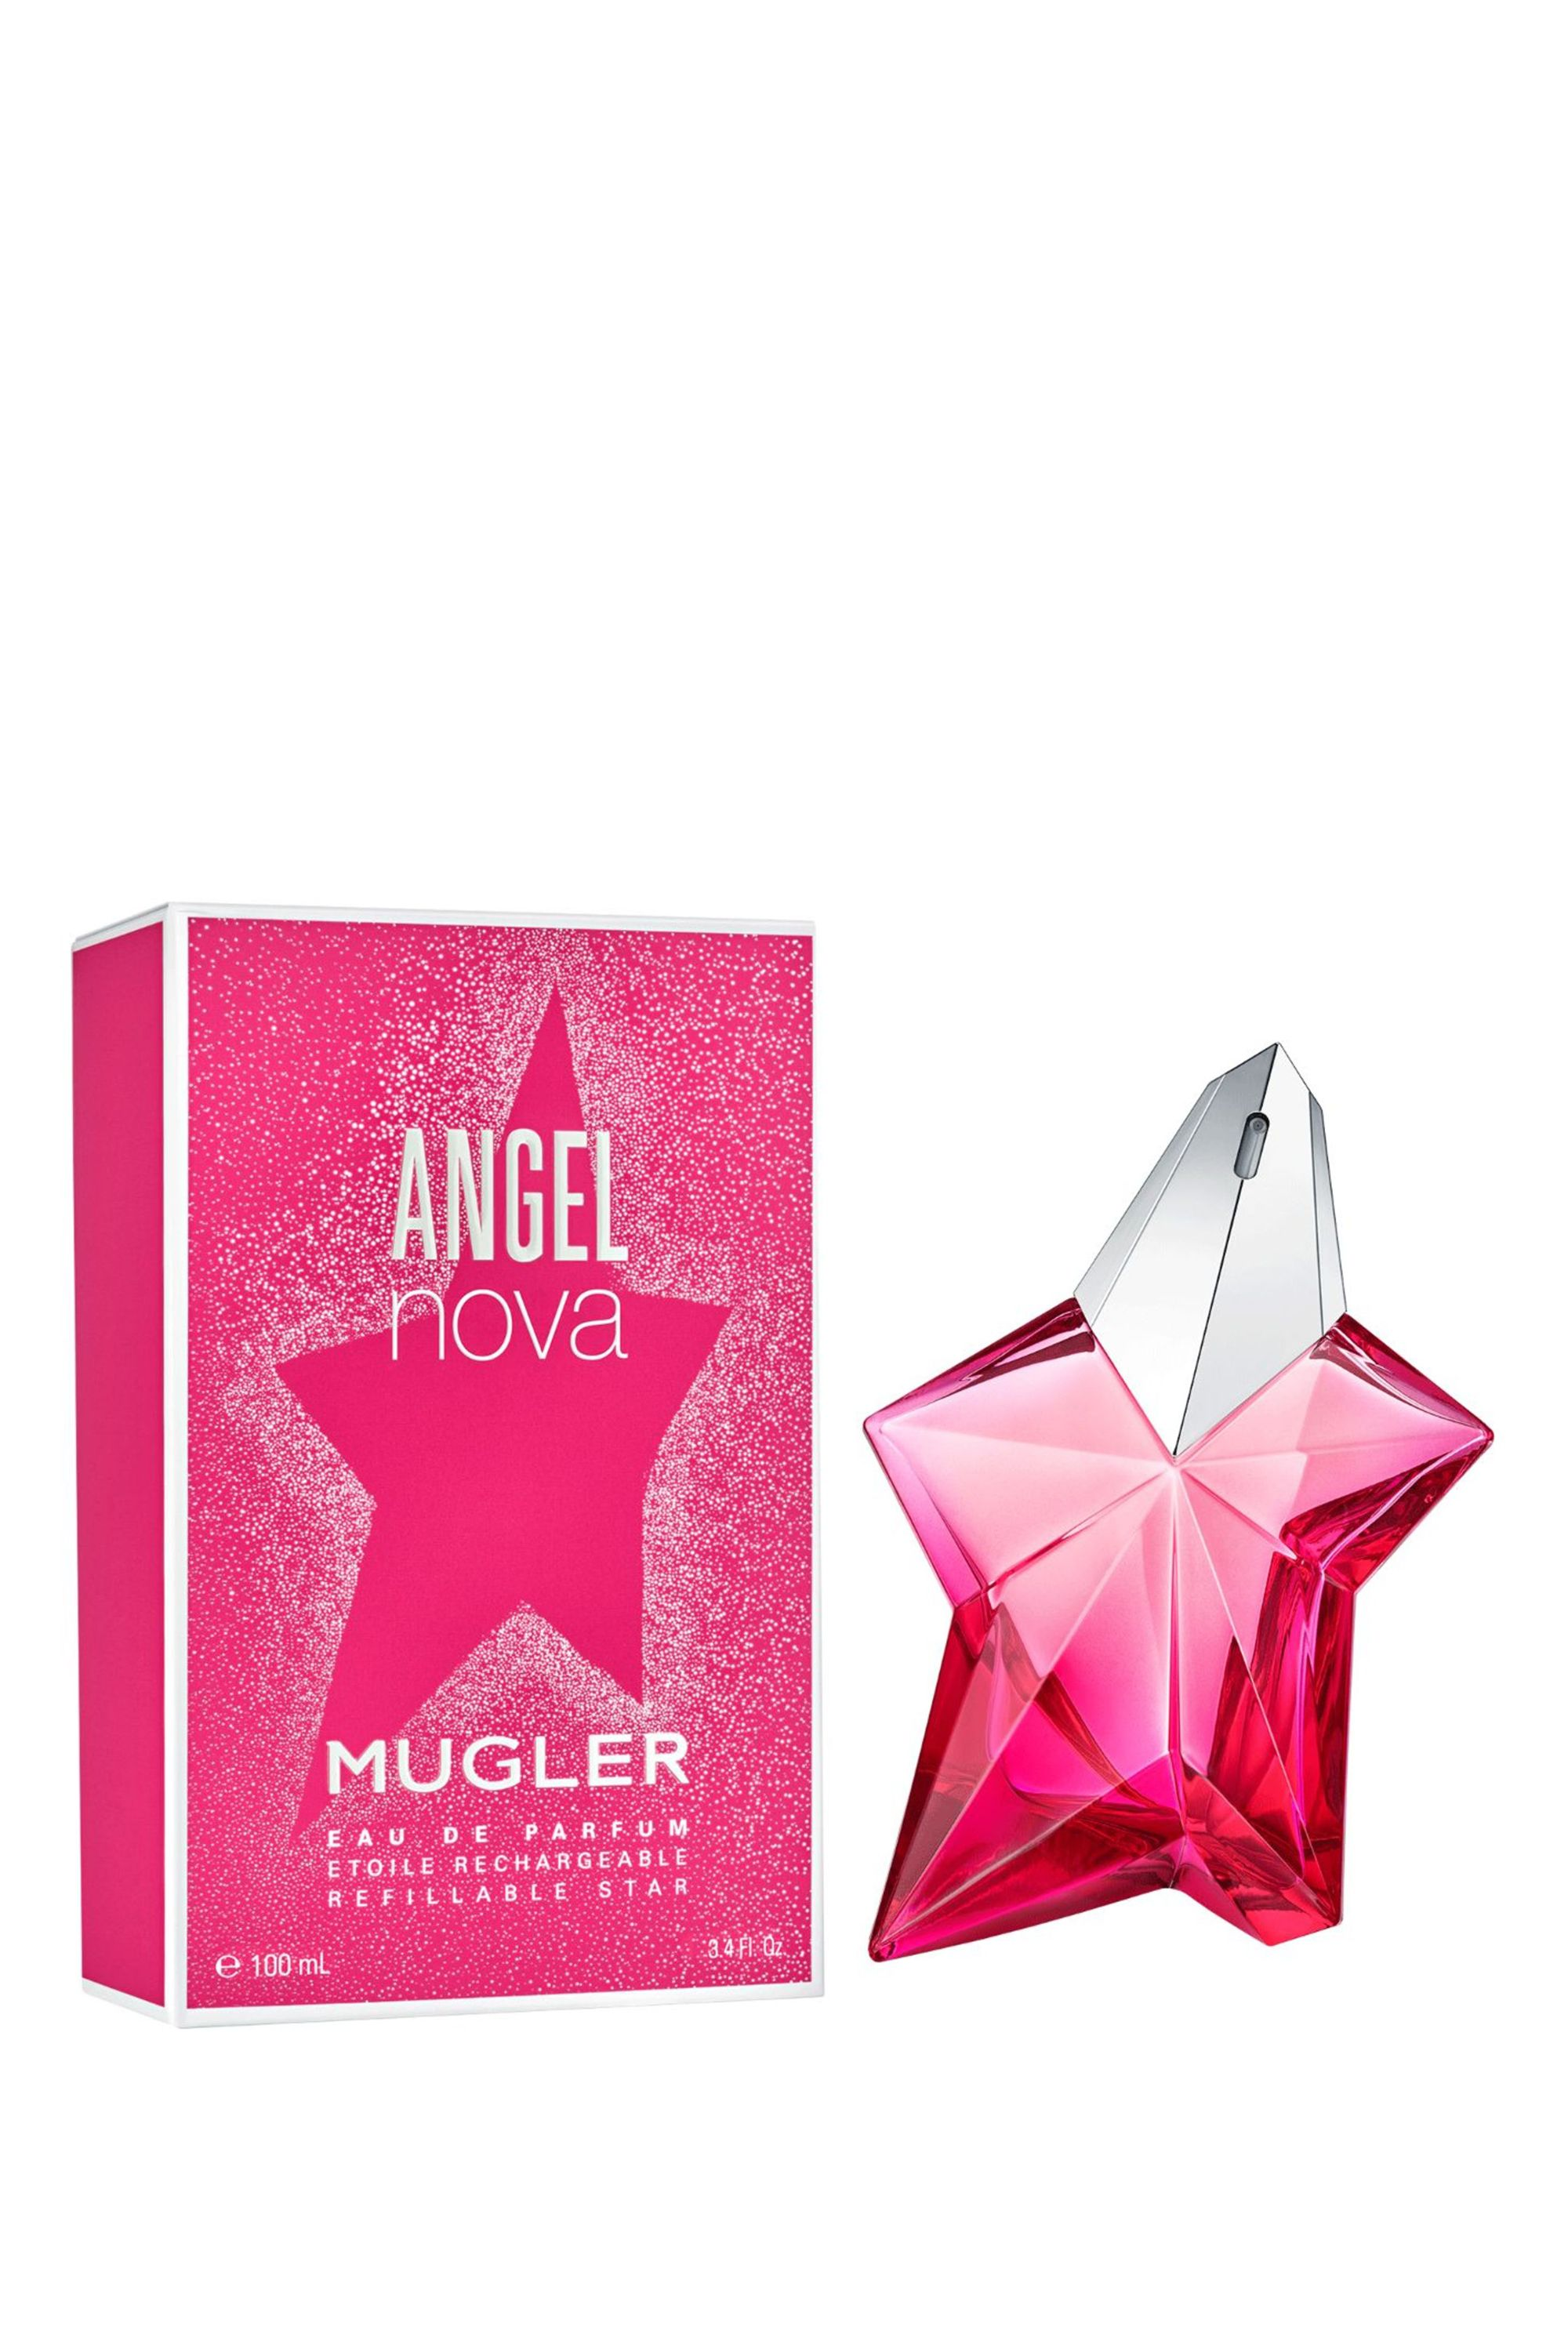 Blissim : Mugler - Eau de parfum Angel Nova - 100ml